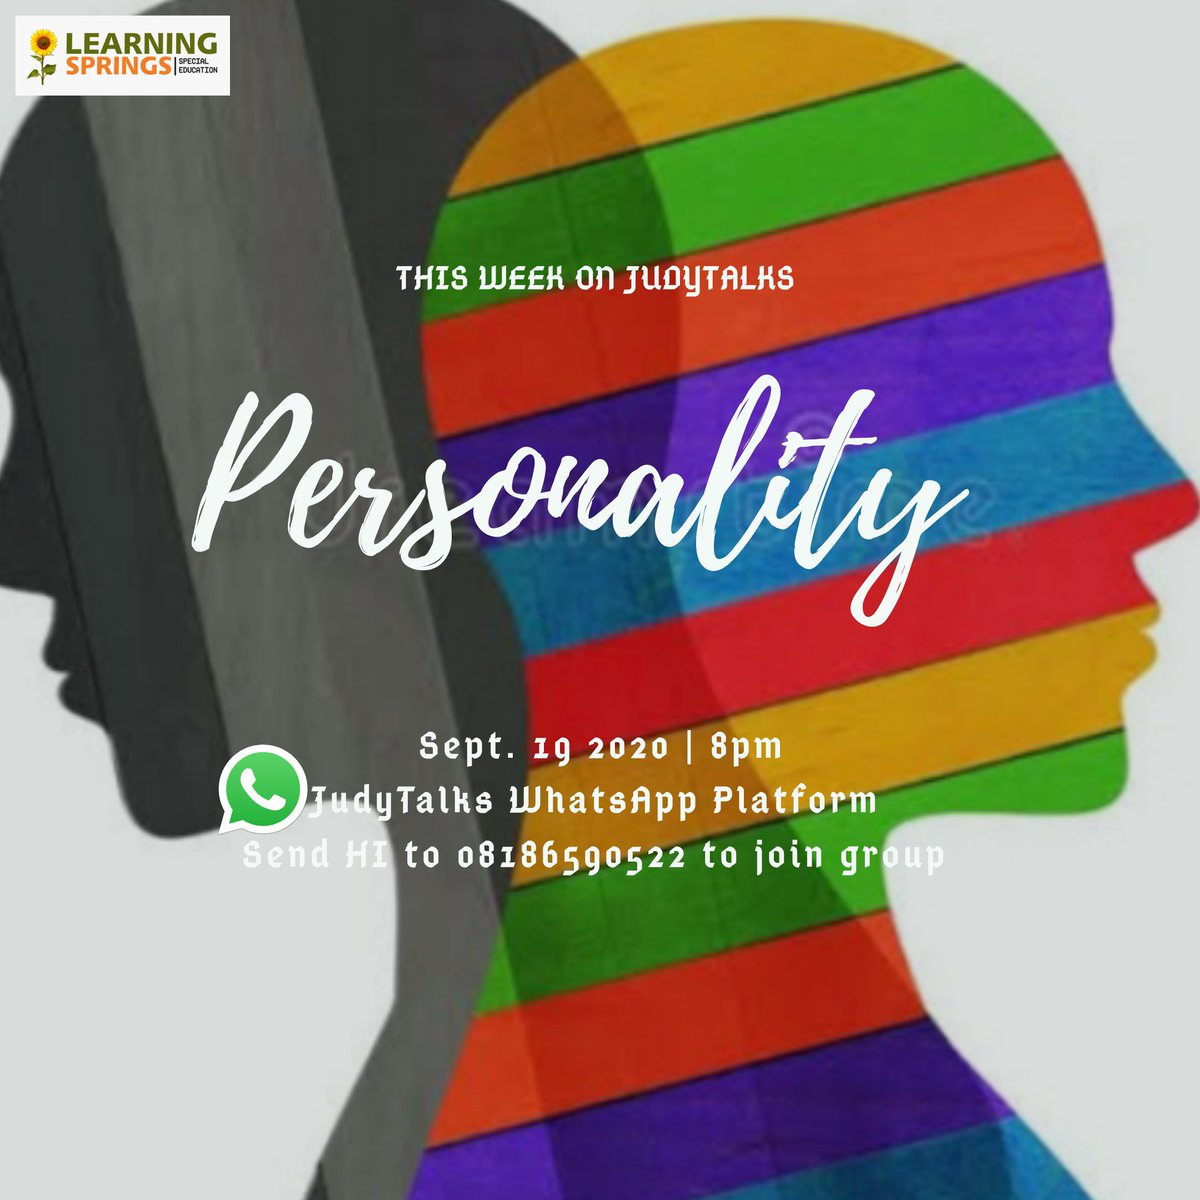 Our mental health series kicks off this Saturday. We warmly invite you to join us...  #personality #personalitytypes #judytalks #rehabilitation #mentalhealth #therapy #counseling #occupationaltherapist #healthcare https://t.co/6dMiJ4tENK